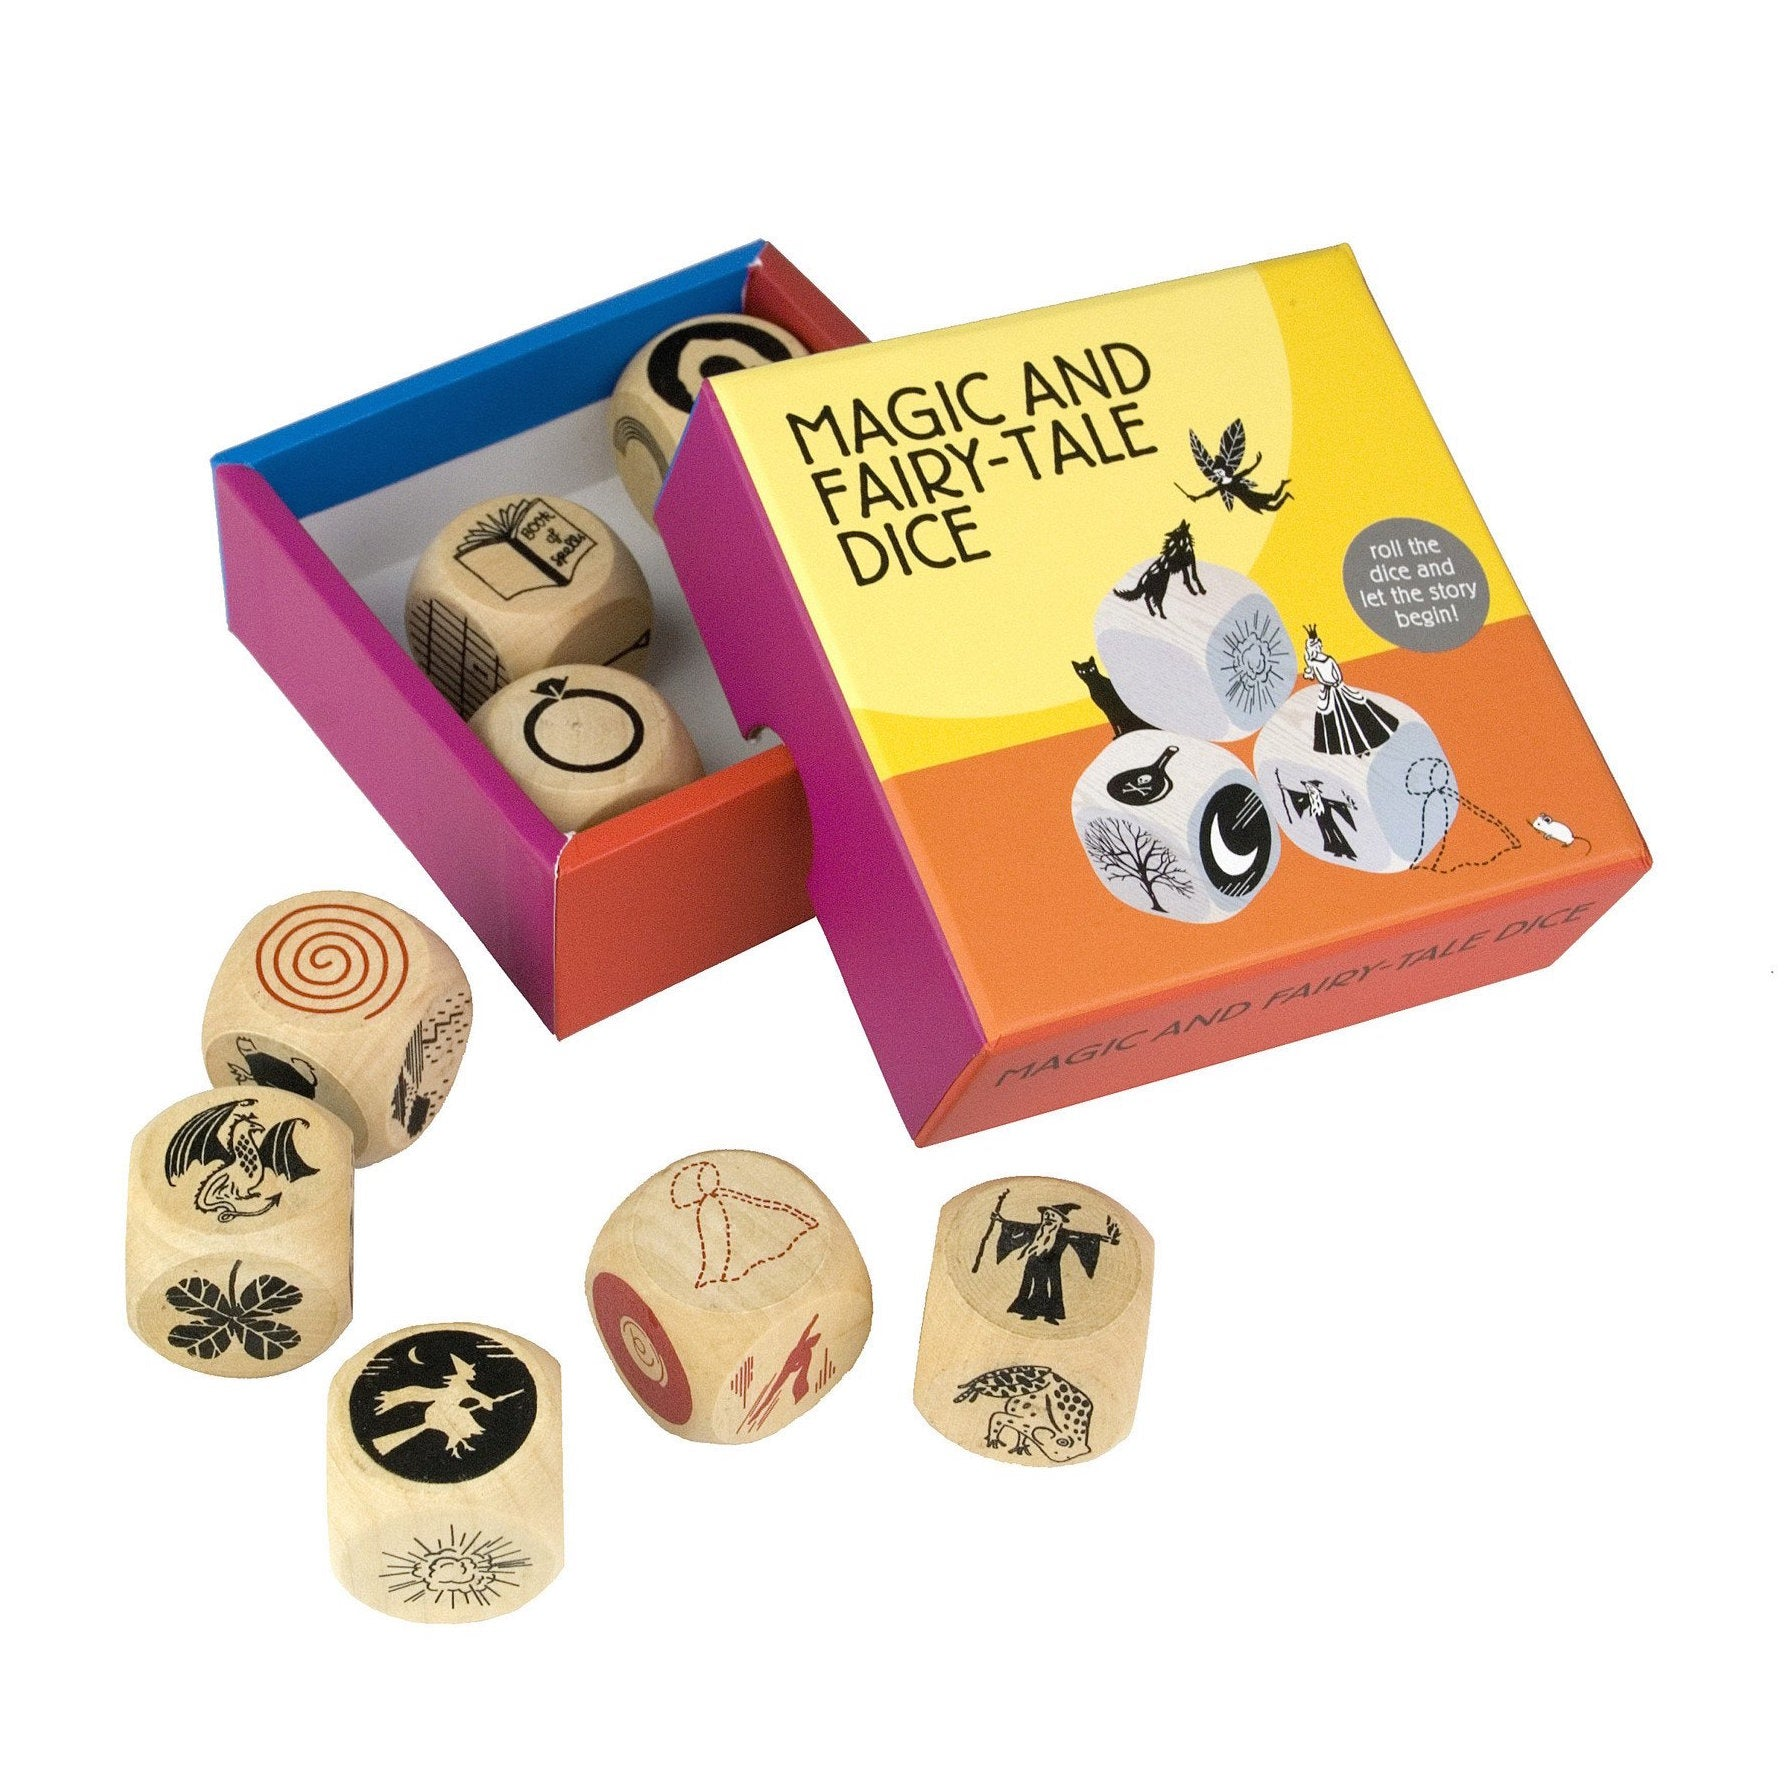 Magic and Fairytale Dice